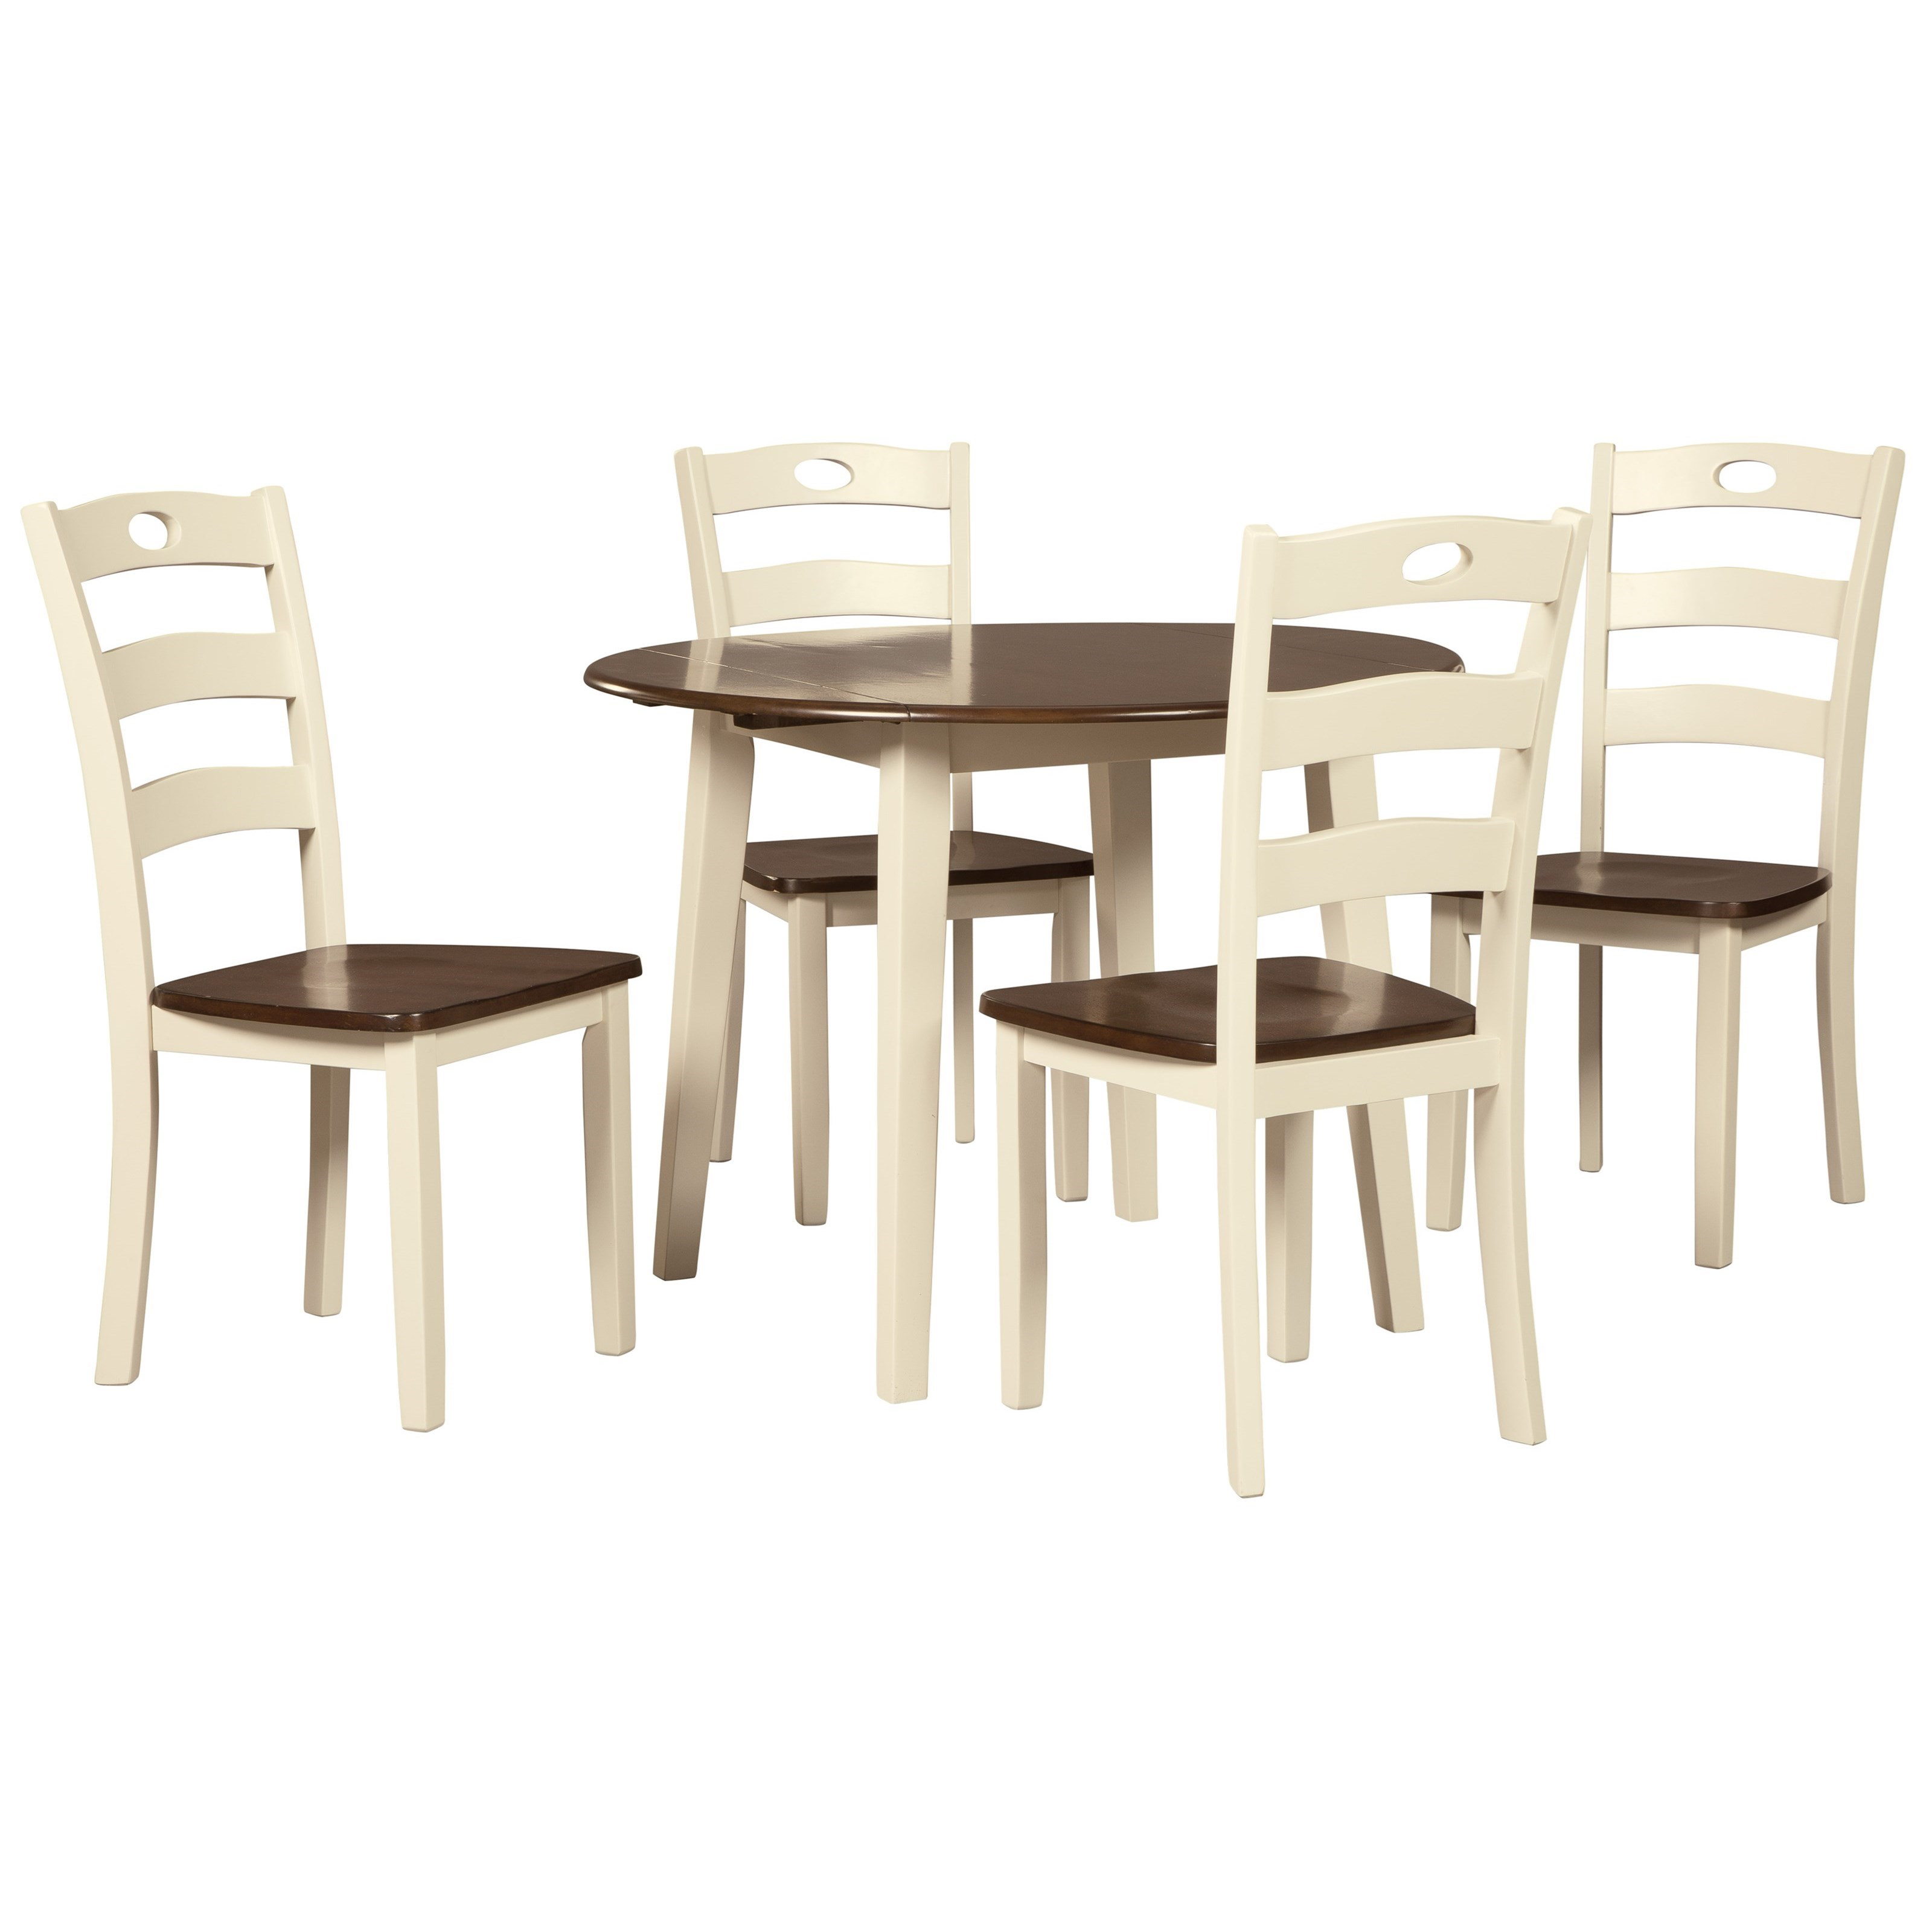 Signature Design by Ashley Woodanville 5-Piece Round Drop Leaf Table Set - Item Number: D335-15+4x01